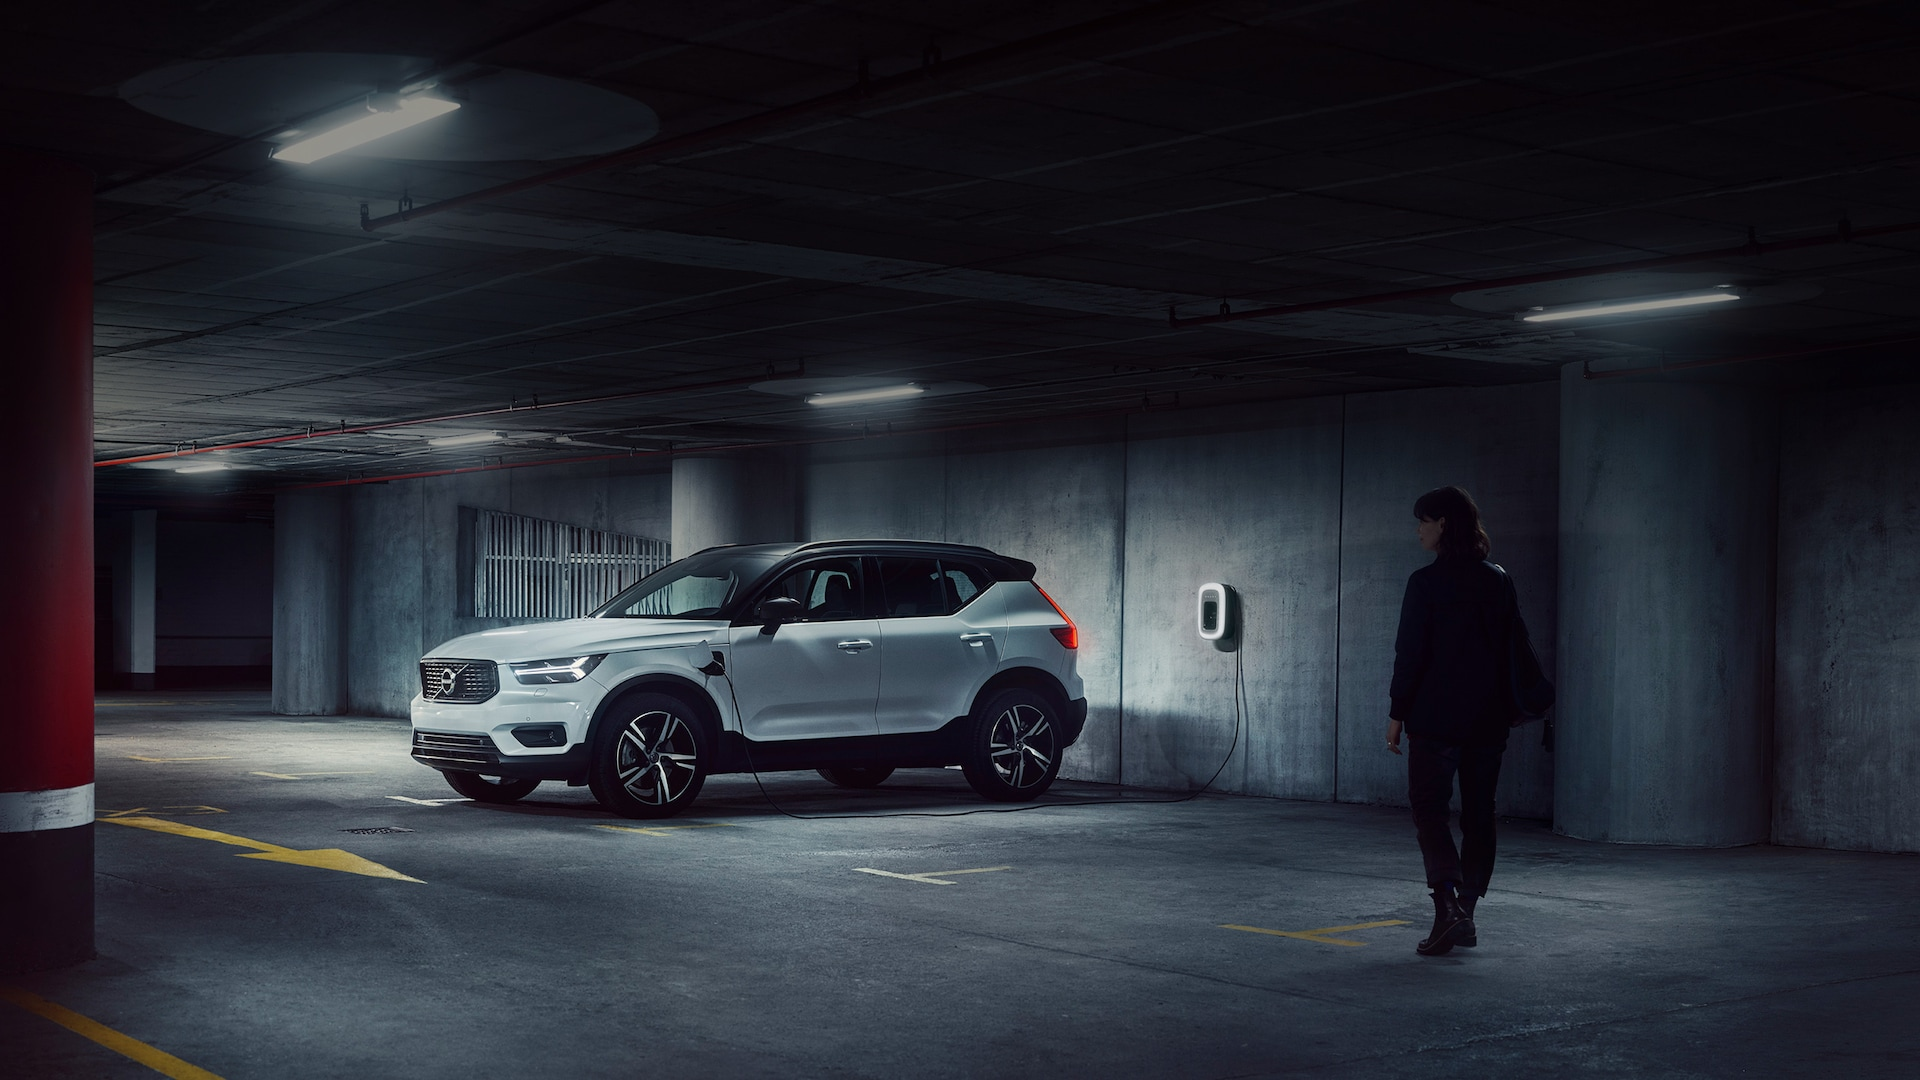 XC40 Recharge Plug-in Hybrid in car park